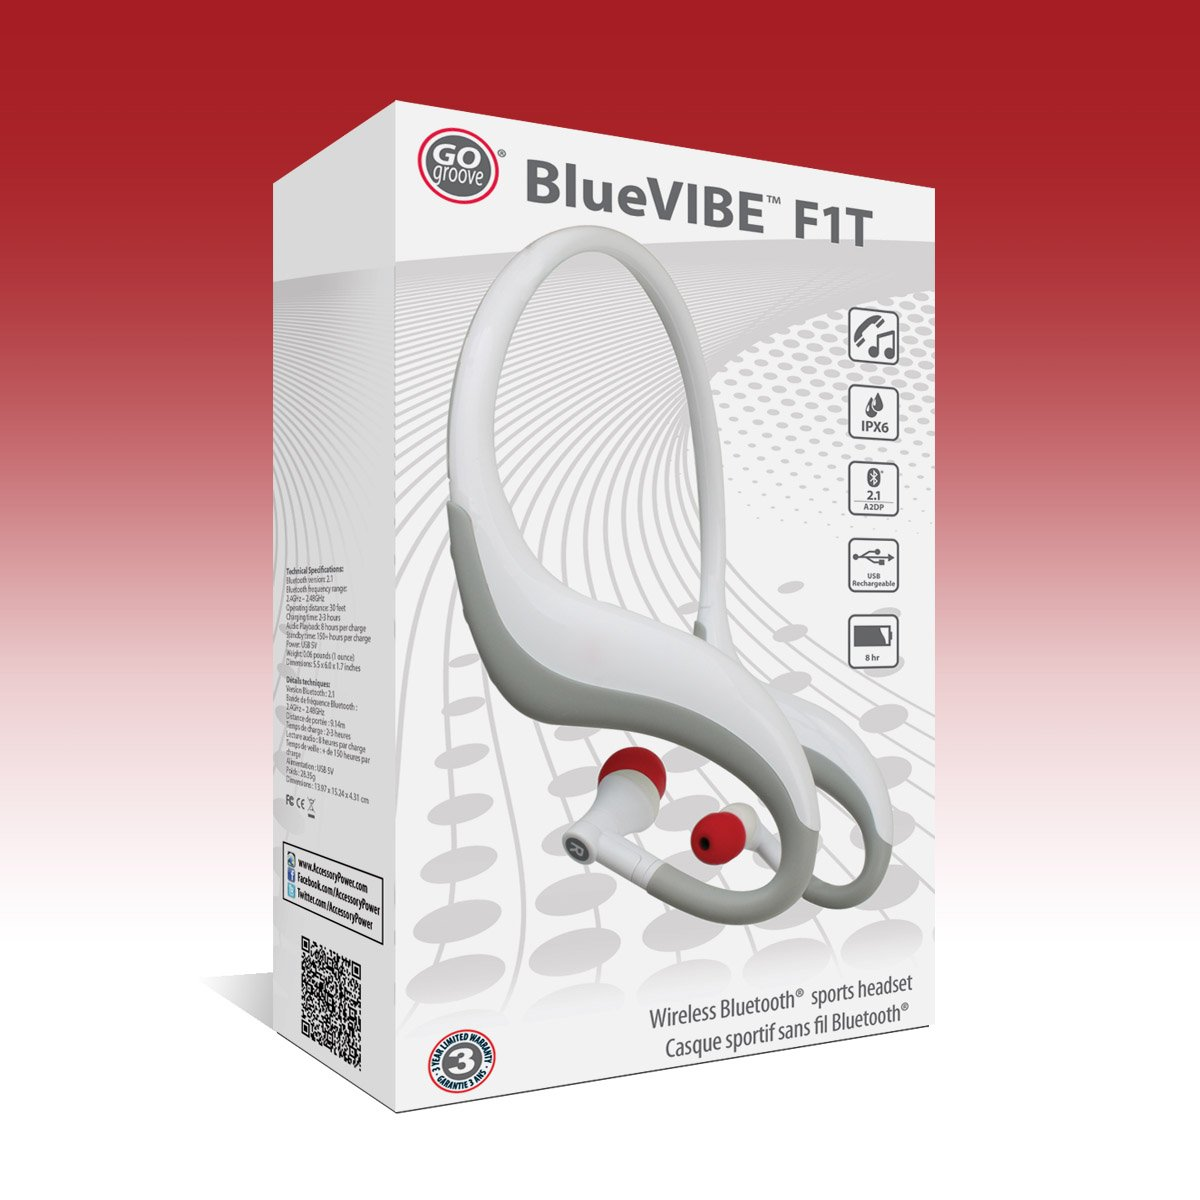 Gogroove BlueVIBE F1T - Auriculares In-Ear Inalámbricos + Bluetooth e Impermeables Para Xiaomi Redmi 3 Pro Moto G4 Plus Motorola Moto G LG Nexus 5X Moto G4 ...